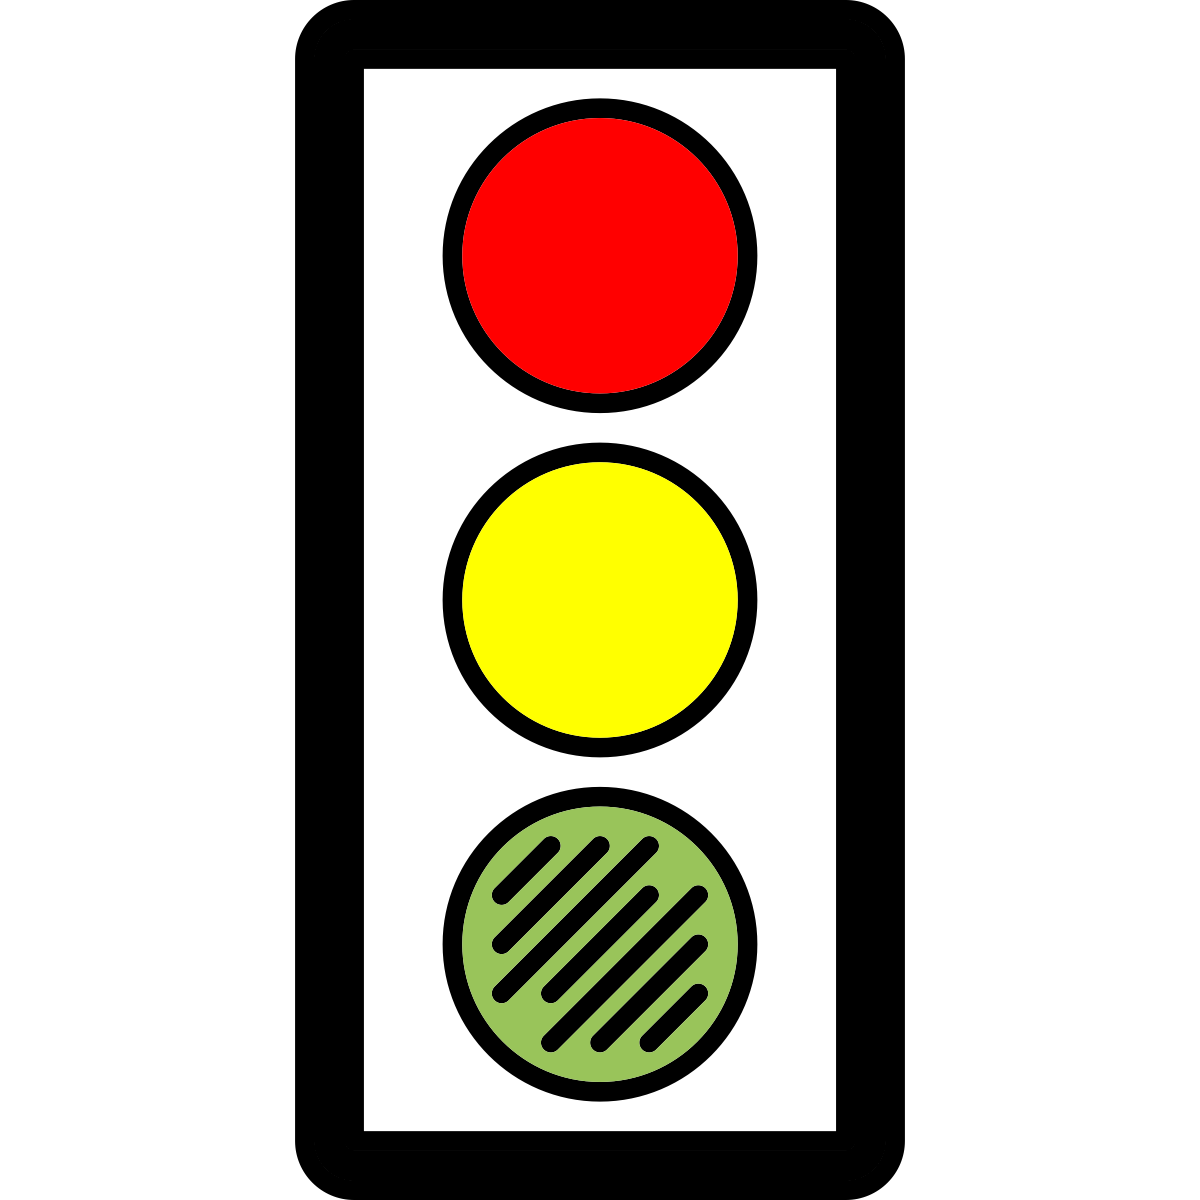 noun_Traffic Light_83807_000000.png